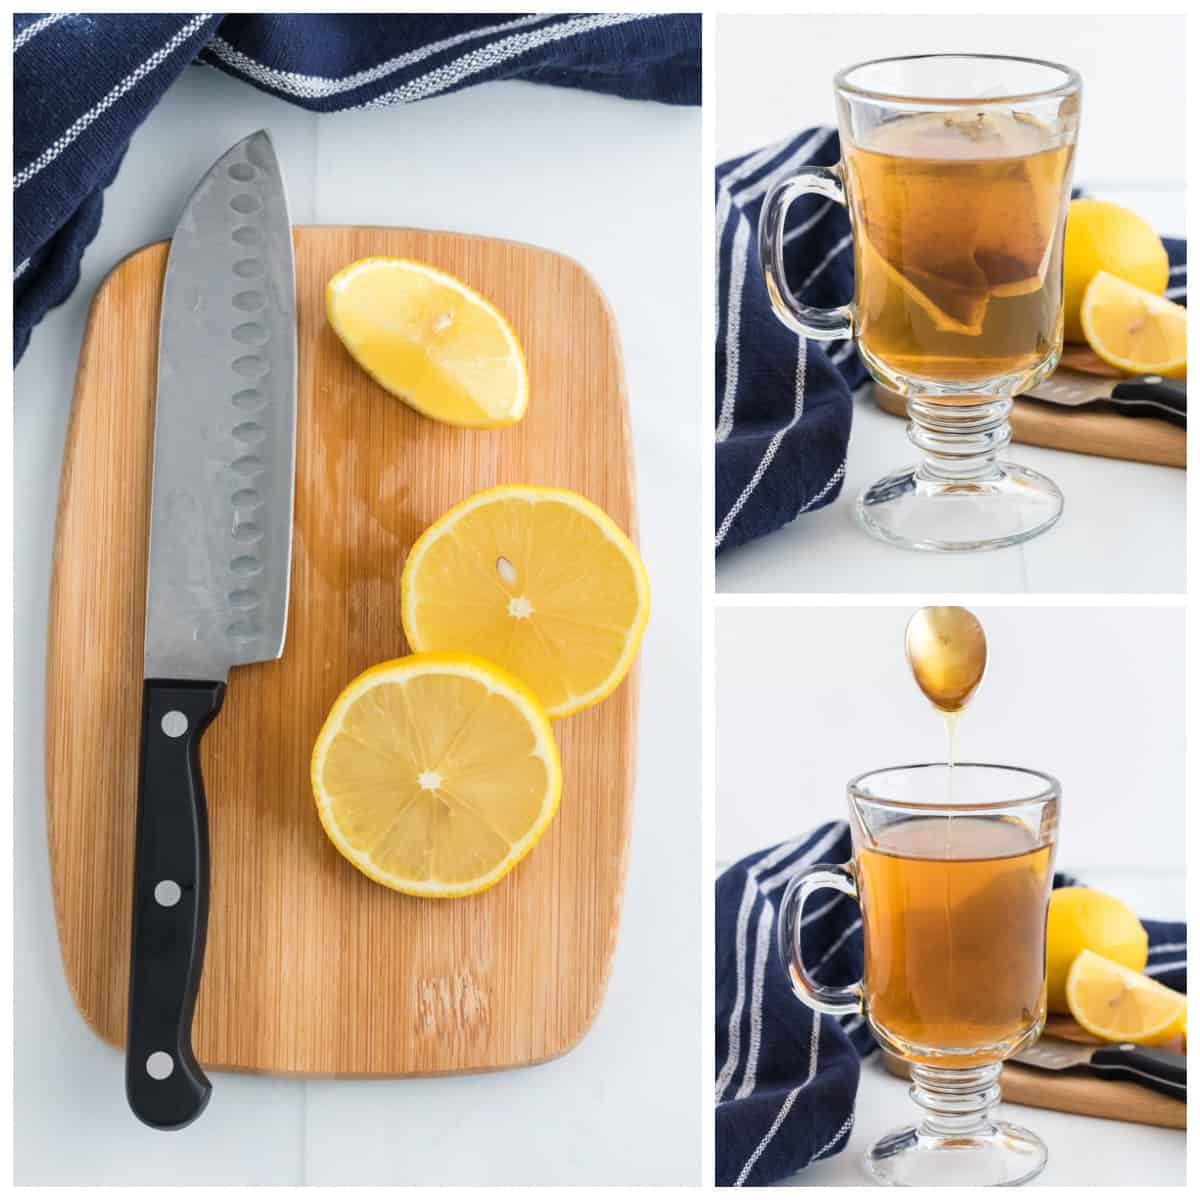 Step by step photos on how to make a Hot Toddy Recipe.